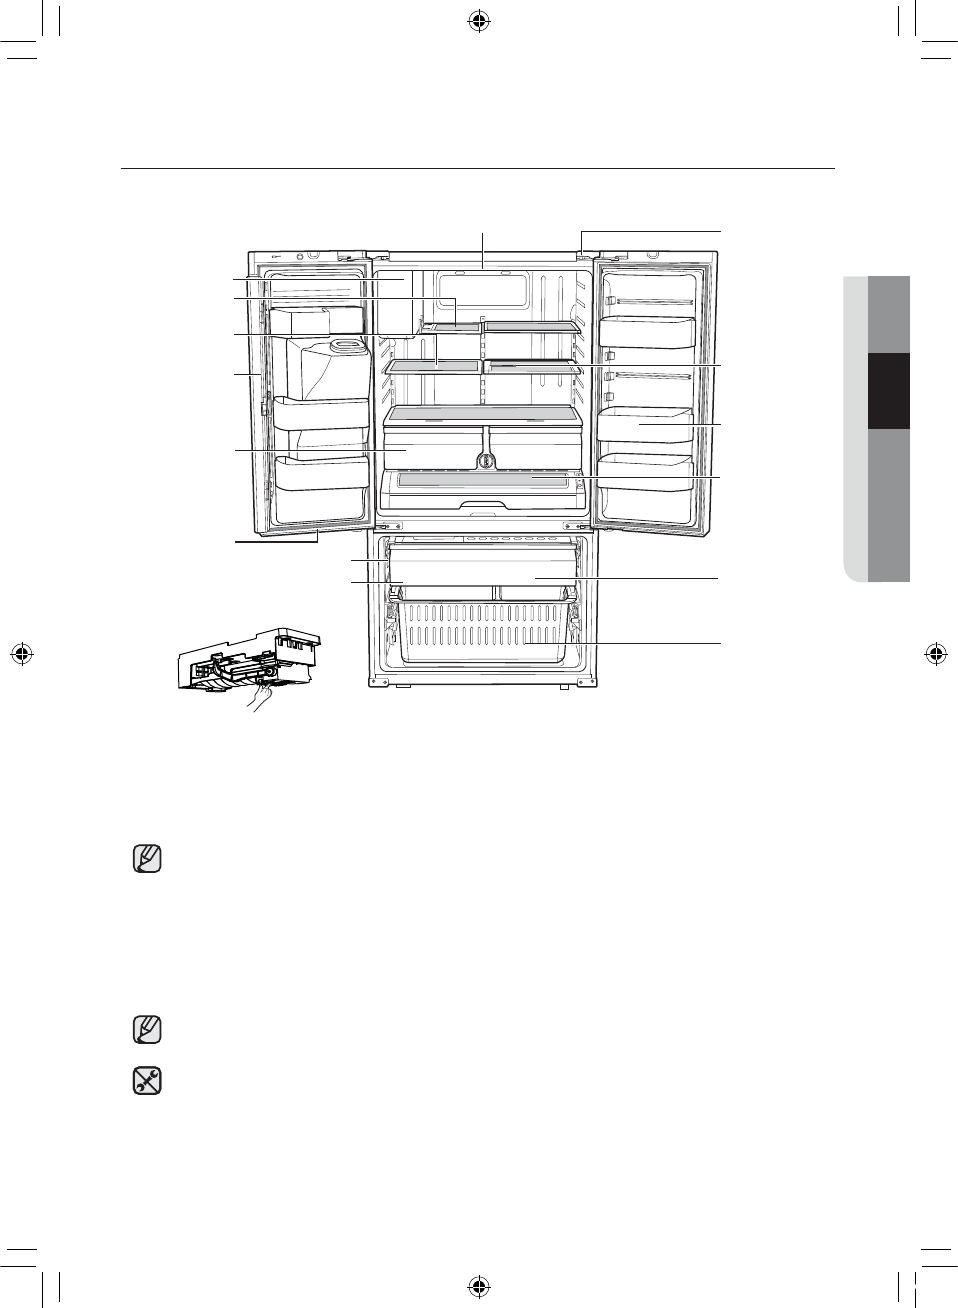 Page 53 of Samsung Refrigerator RF263BEAESR User Guide